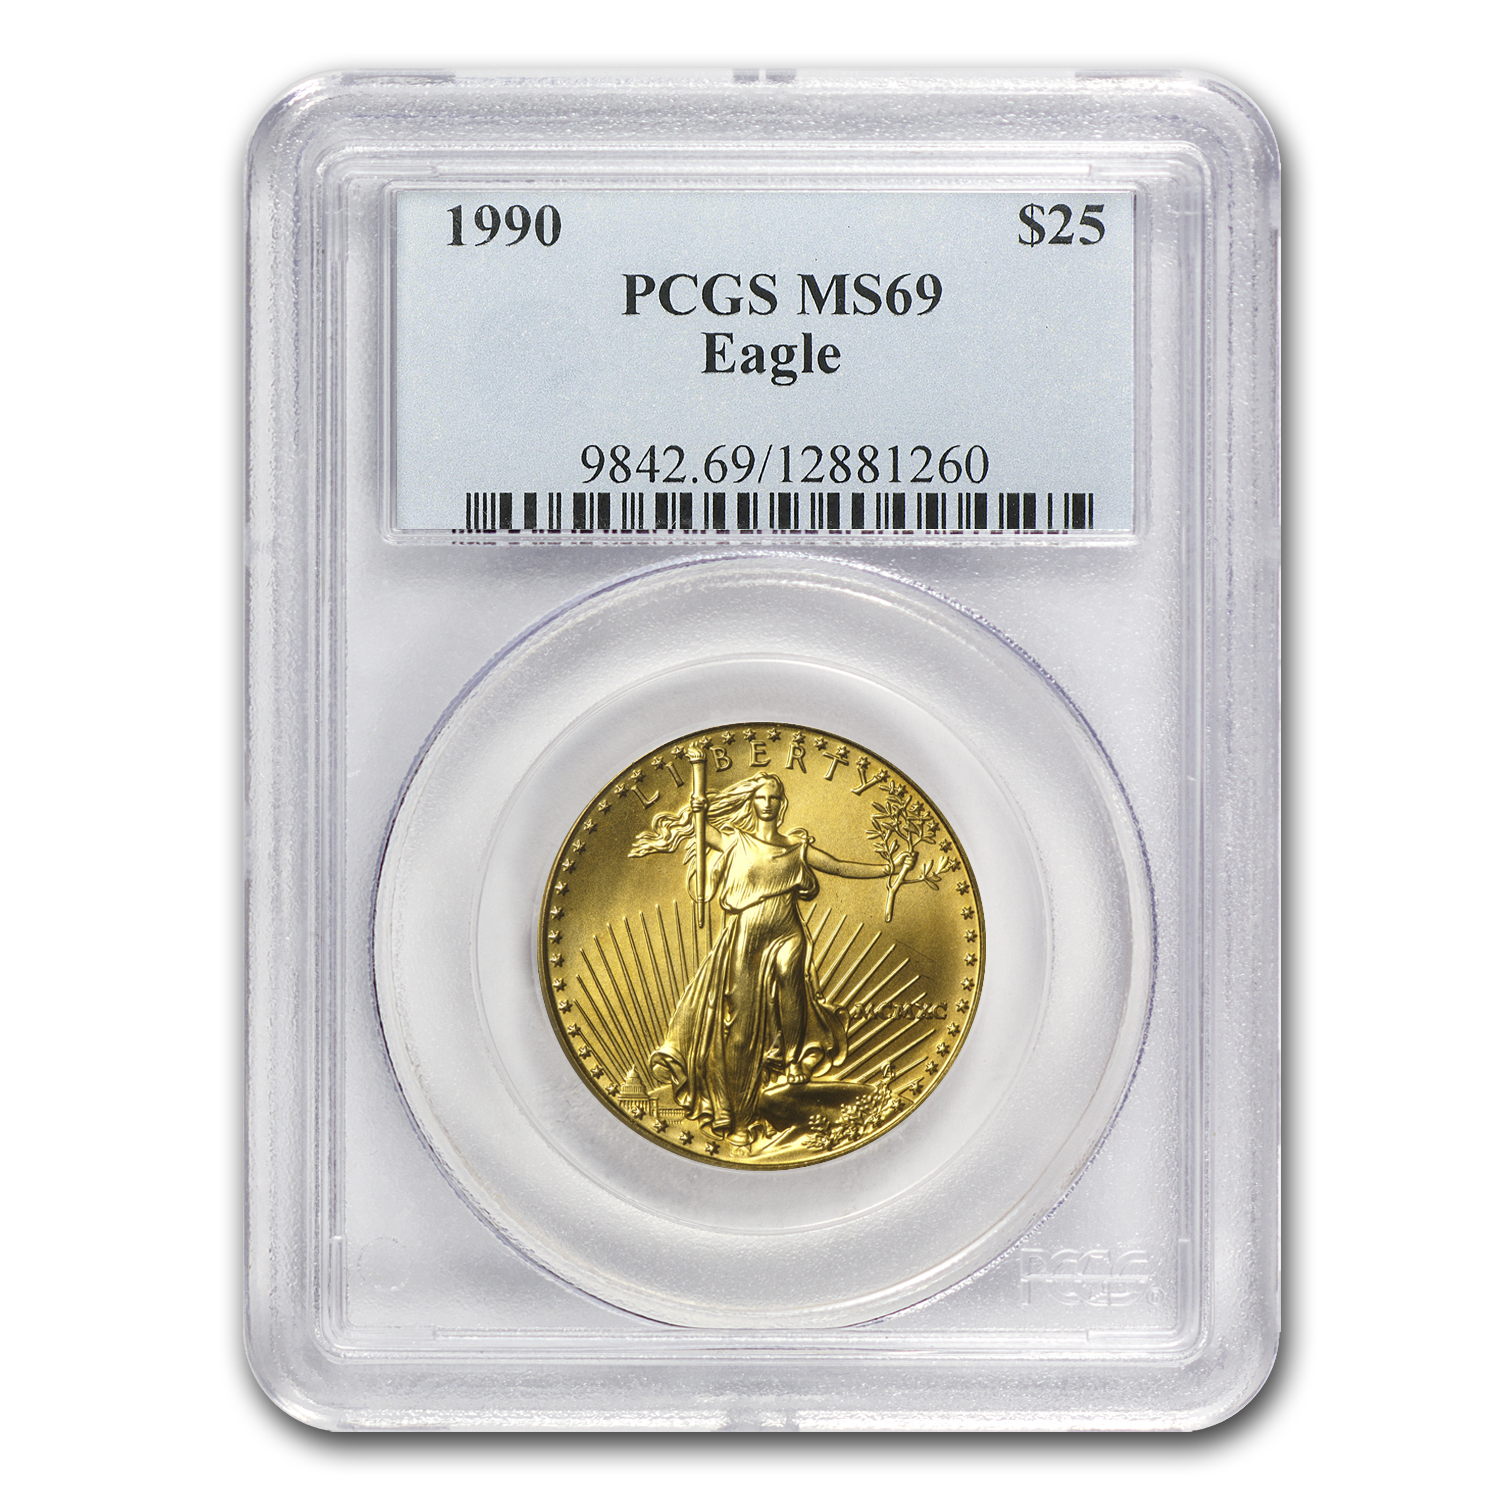 1990 1/2 oz Gold American Eagle MS-69 PCGS